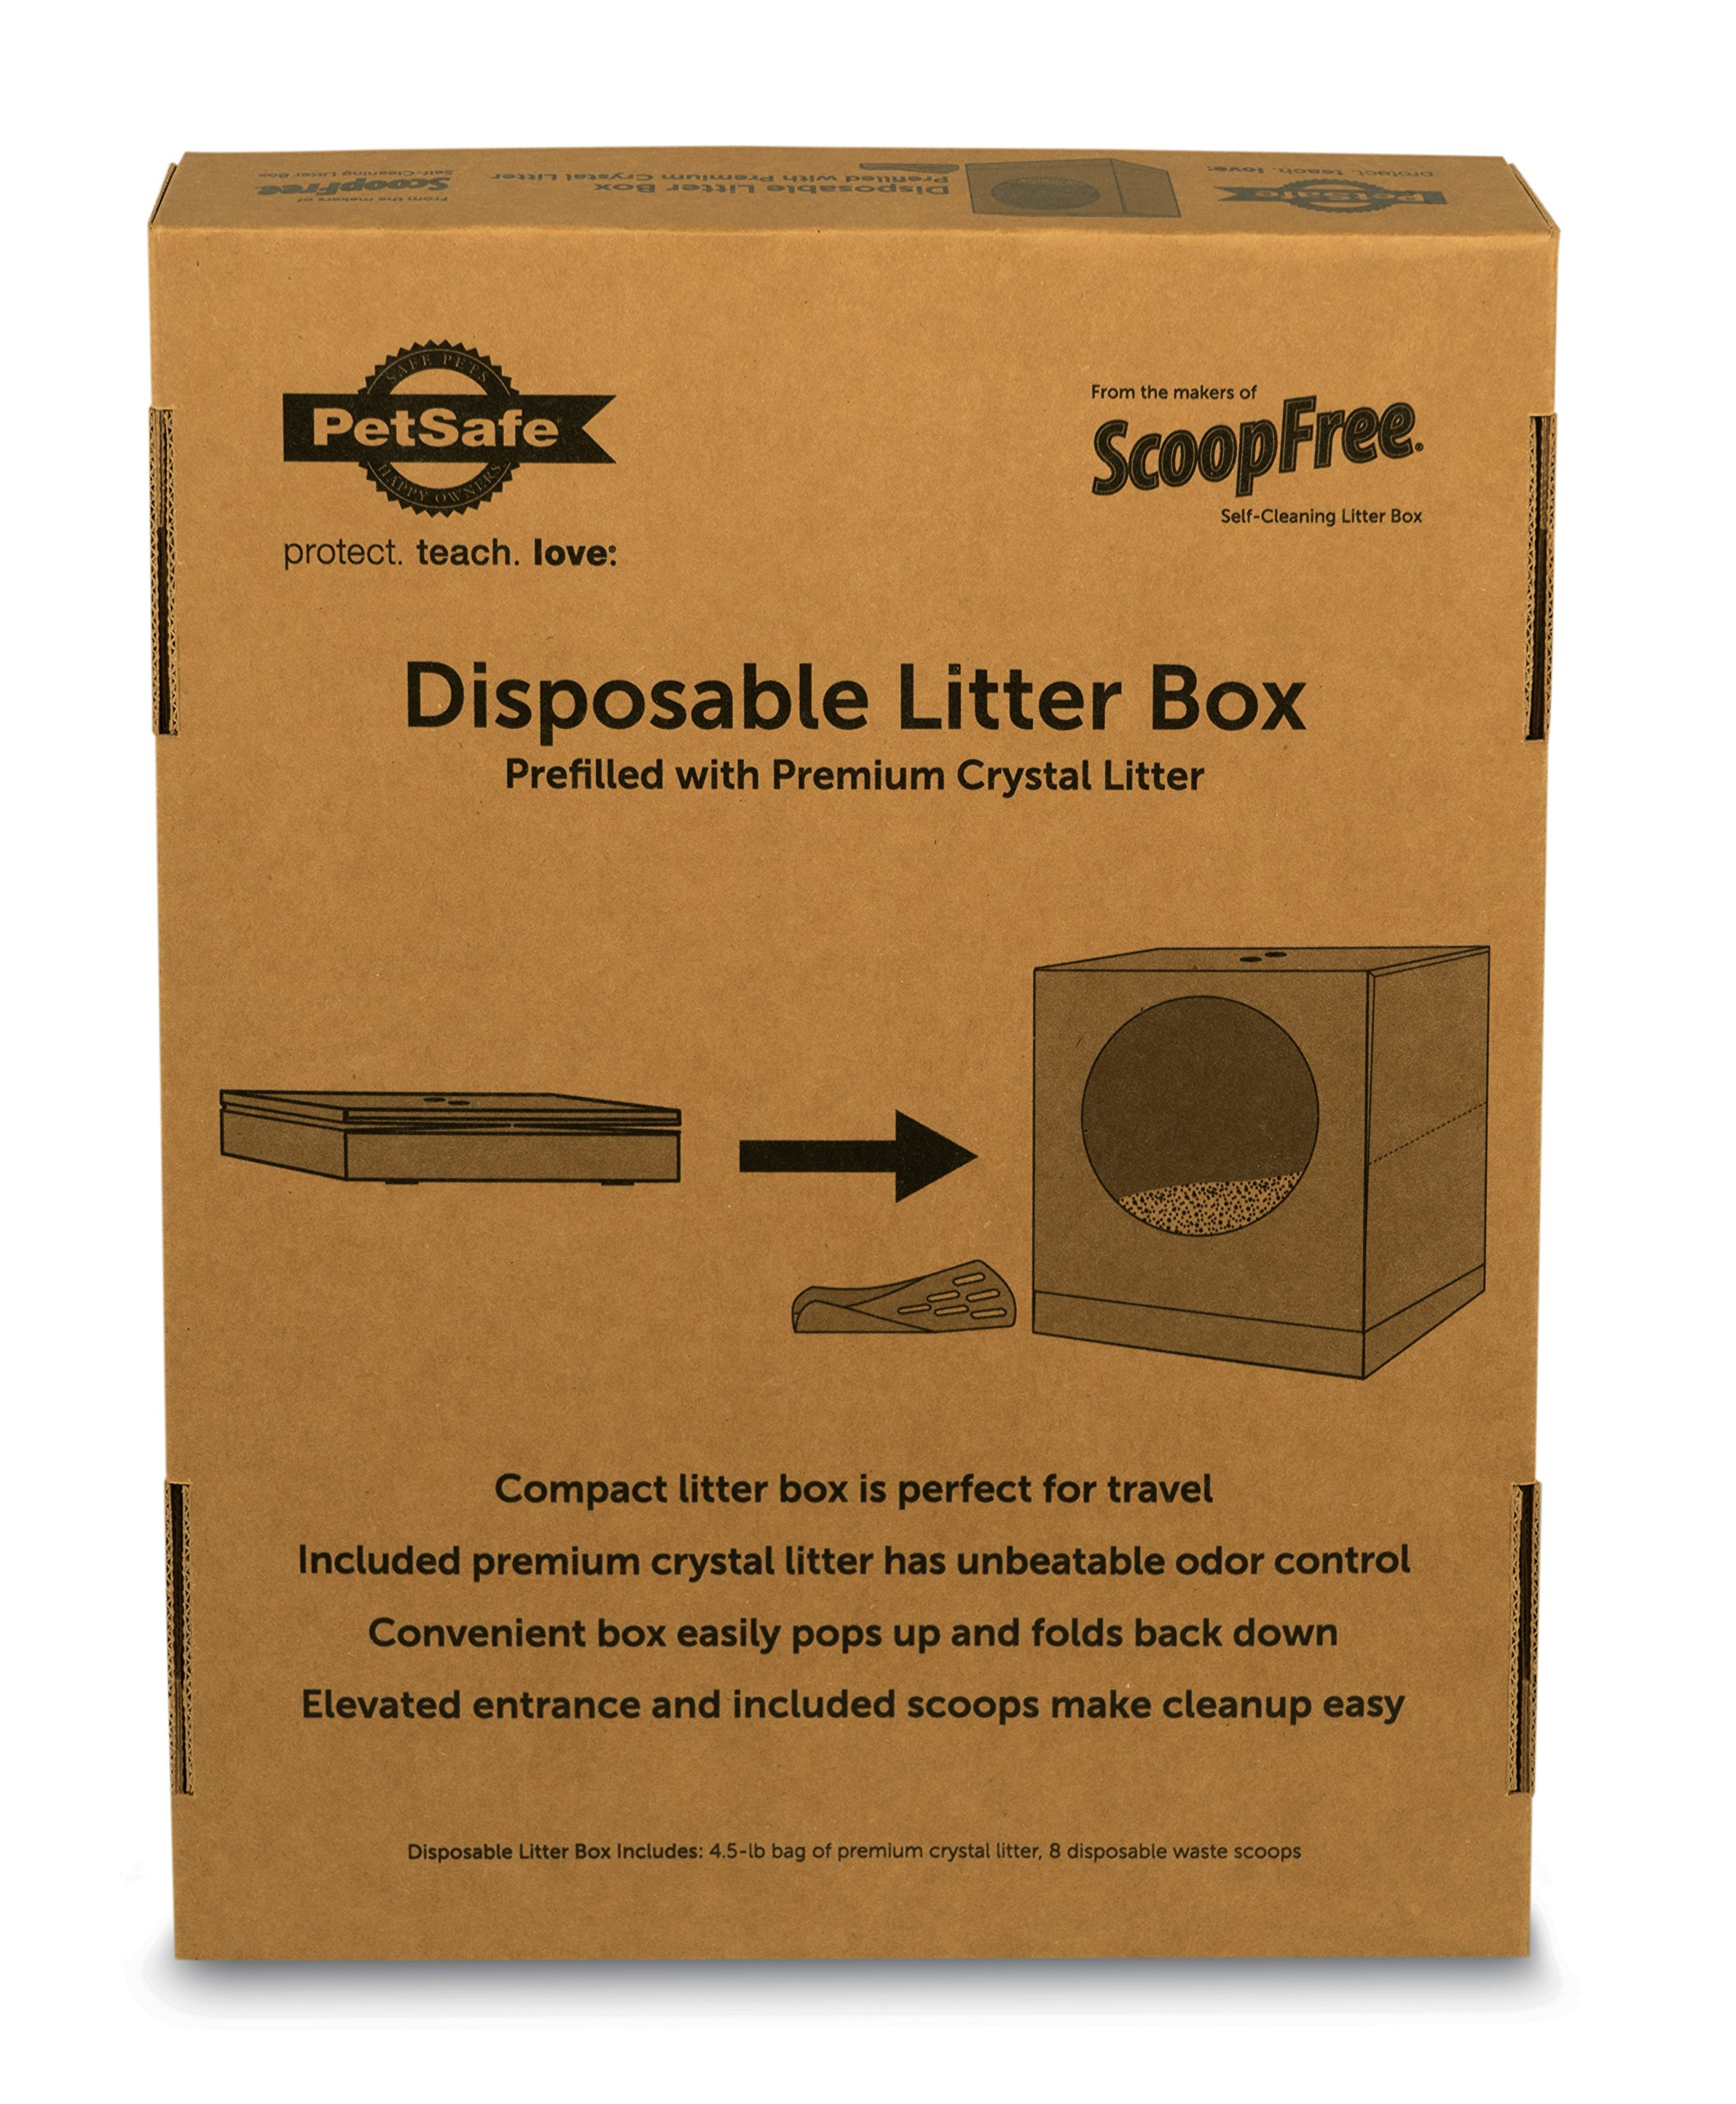 PetSafe Disposable Cat Litter Box, Collapsible Covered Design for Travel, from the Makers of ScoopFree Self Cleaning Litter Box 5